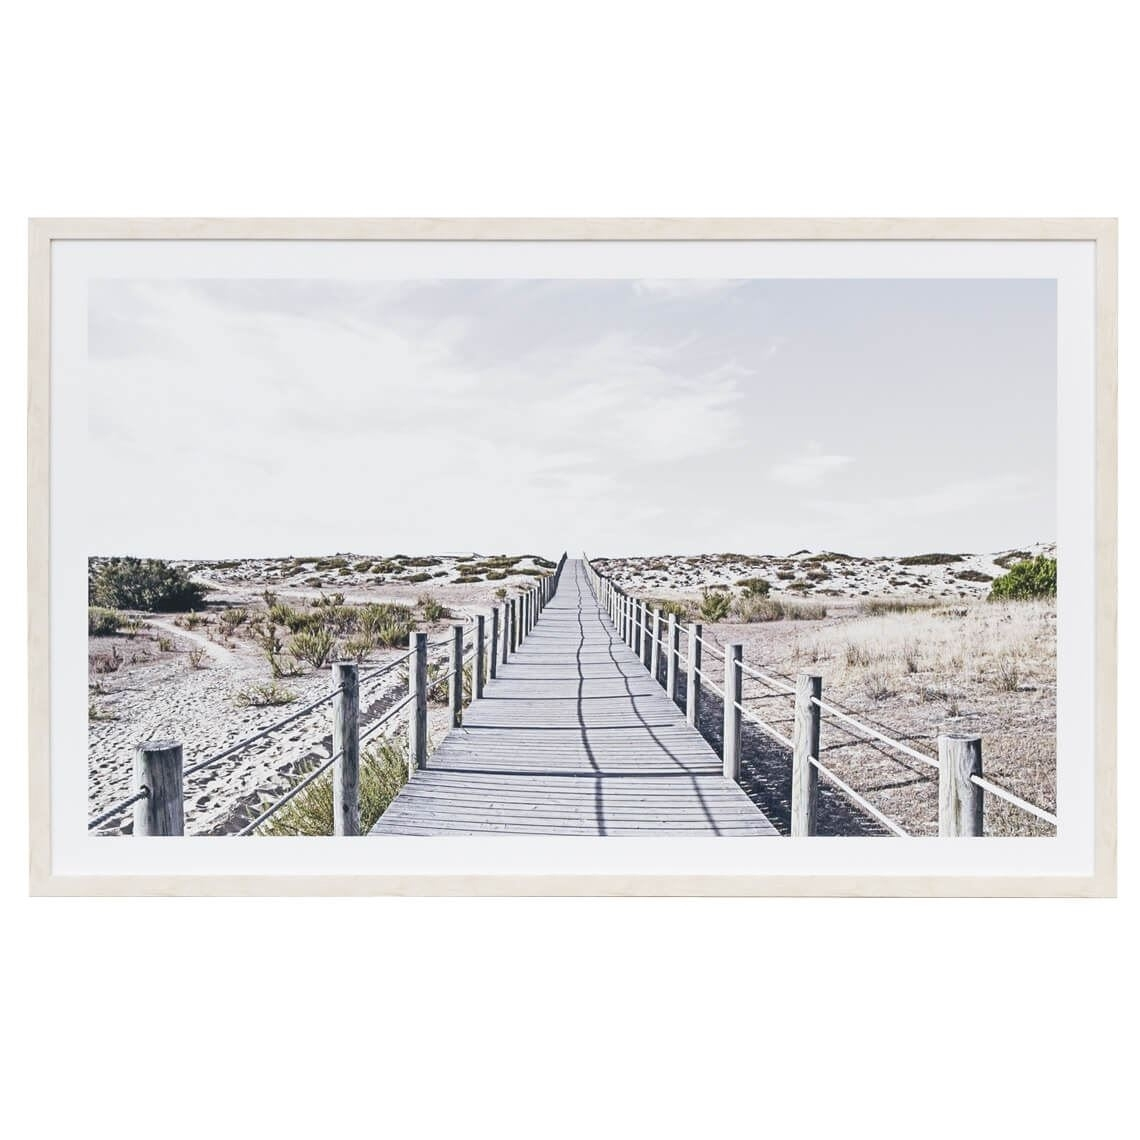 Wall Prints | Wall Art & Framed Prints | Freedom For Most Up To Date Mandurah Canvas Wall Art (View 11 of 15)